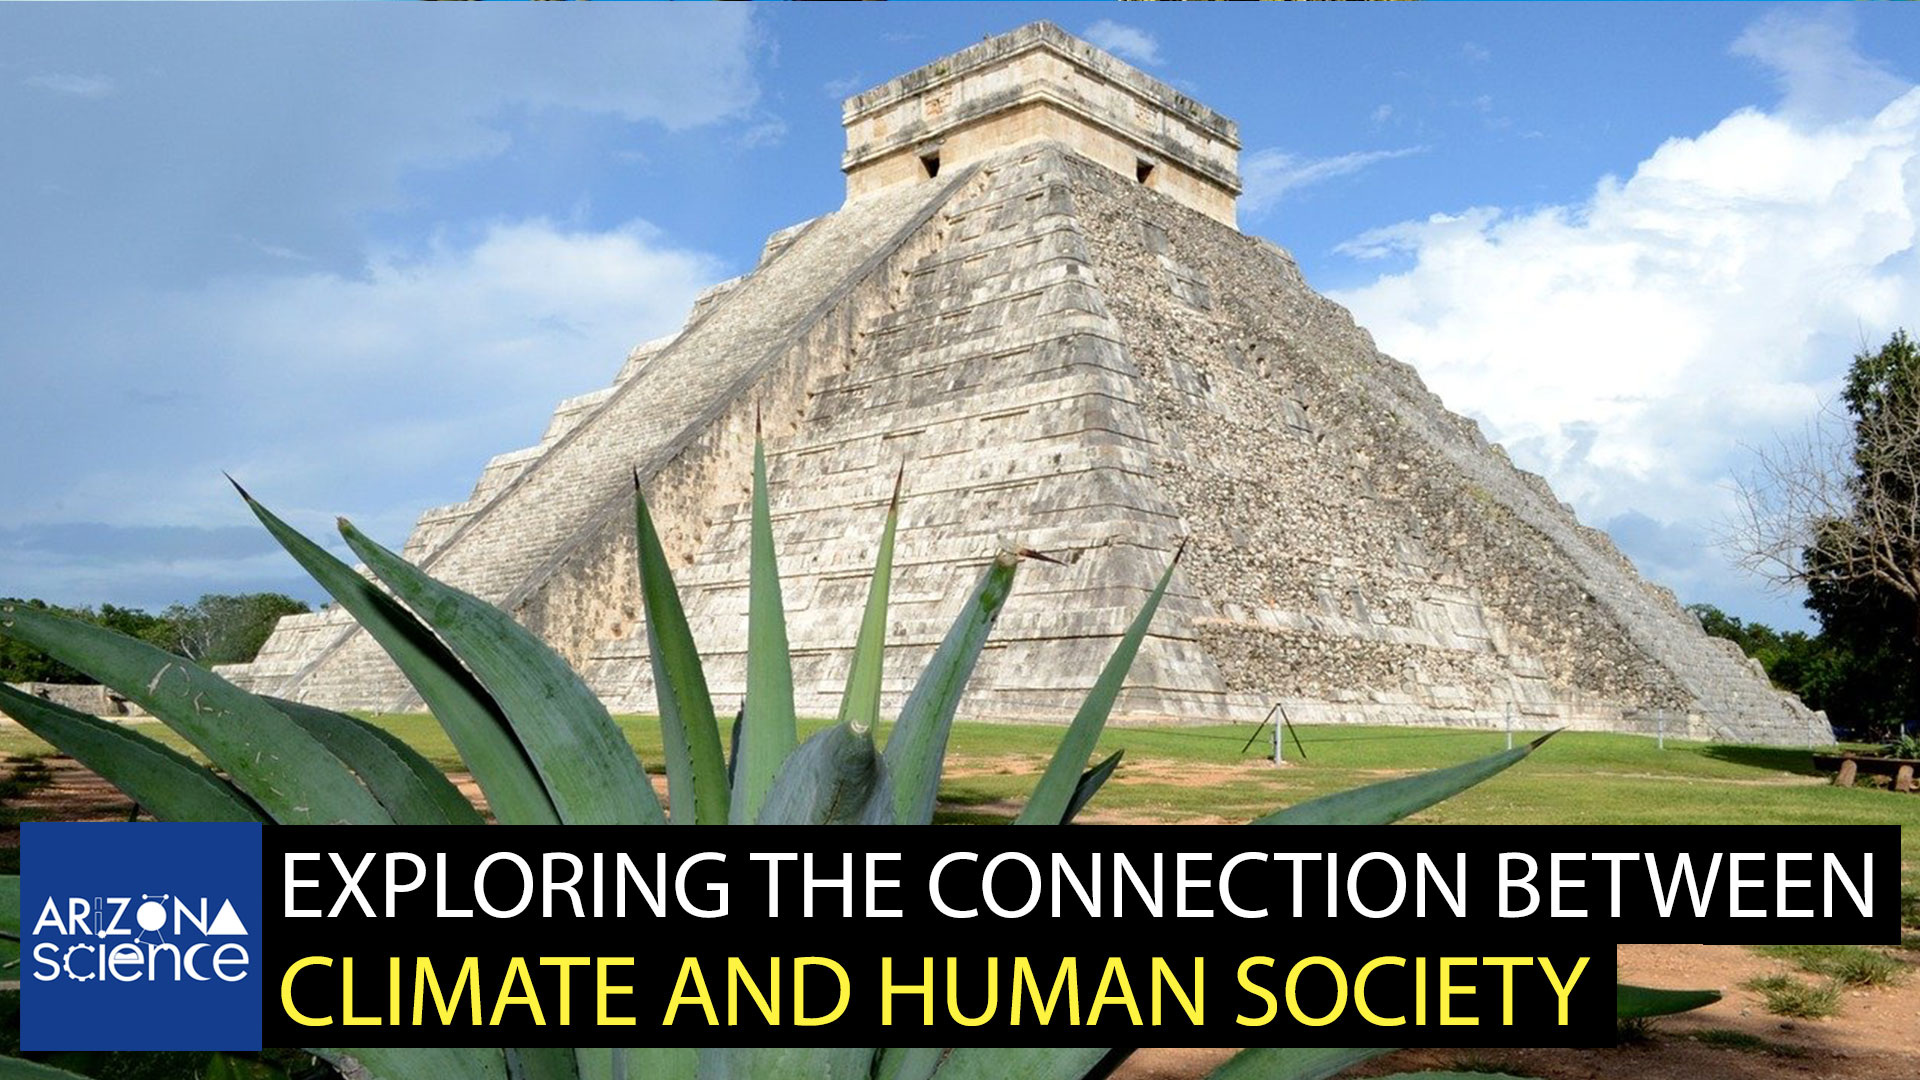 Climate historians cite drought as a factor behind the collapse of the Mayan civilization.